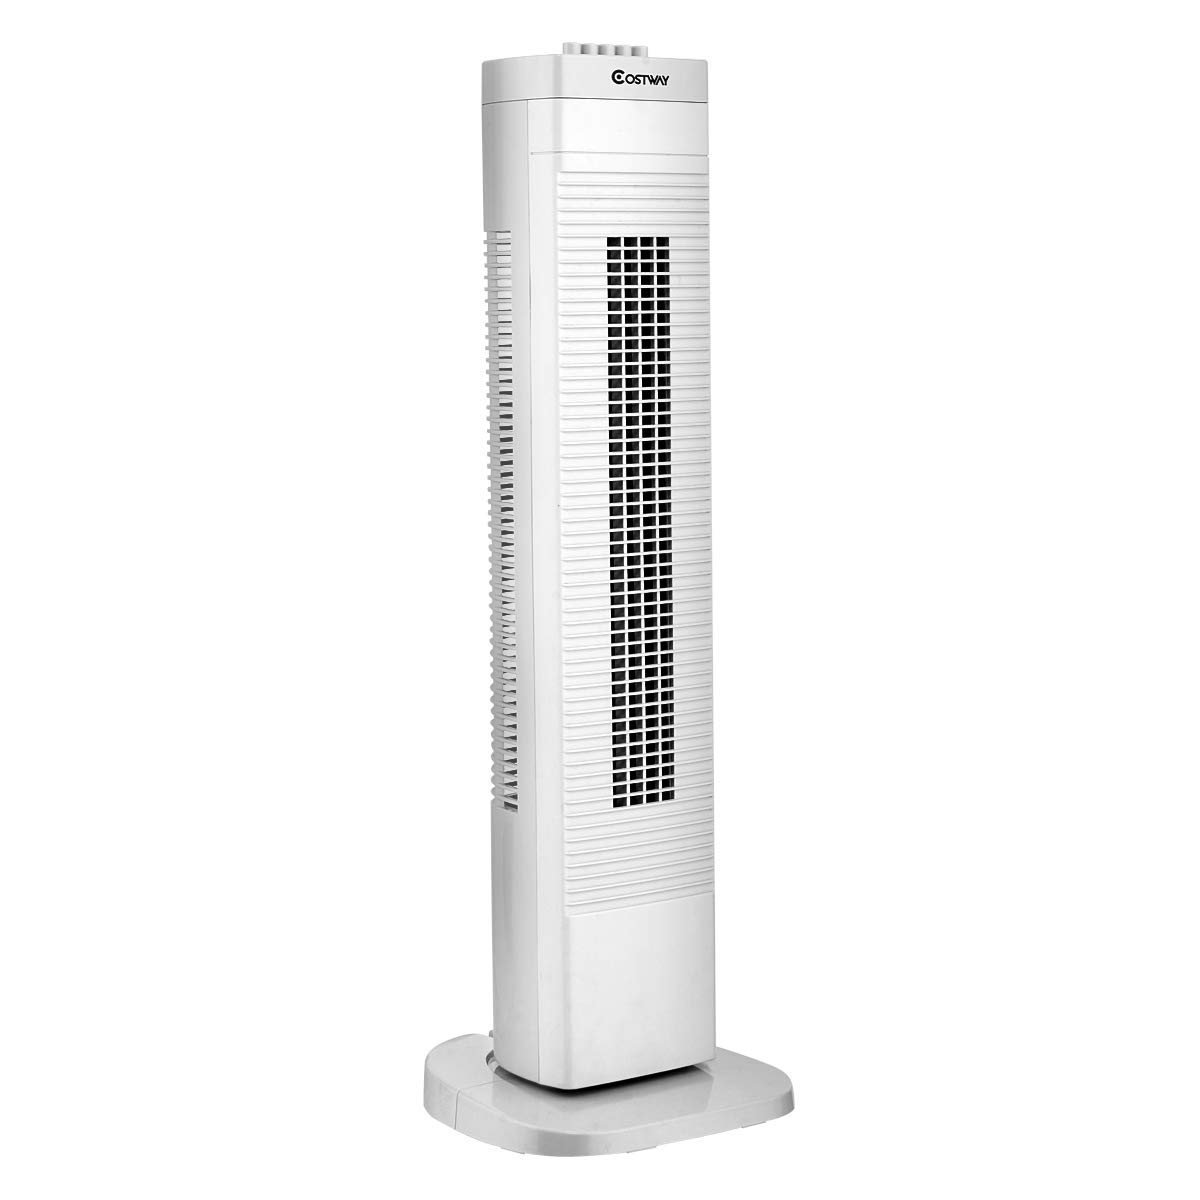 COSTWAY Tower Fan, 30-Inch Quiet Portable Oscillating Fan, 3 Speed Control, Compact and Space Saving, Oscillating Tower Fan for Bedrooms, Living Rooms, Kitchen, Offices, White by COSTWAY